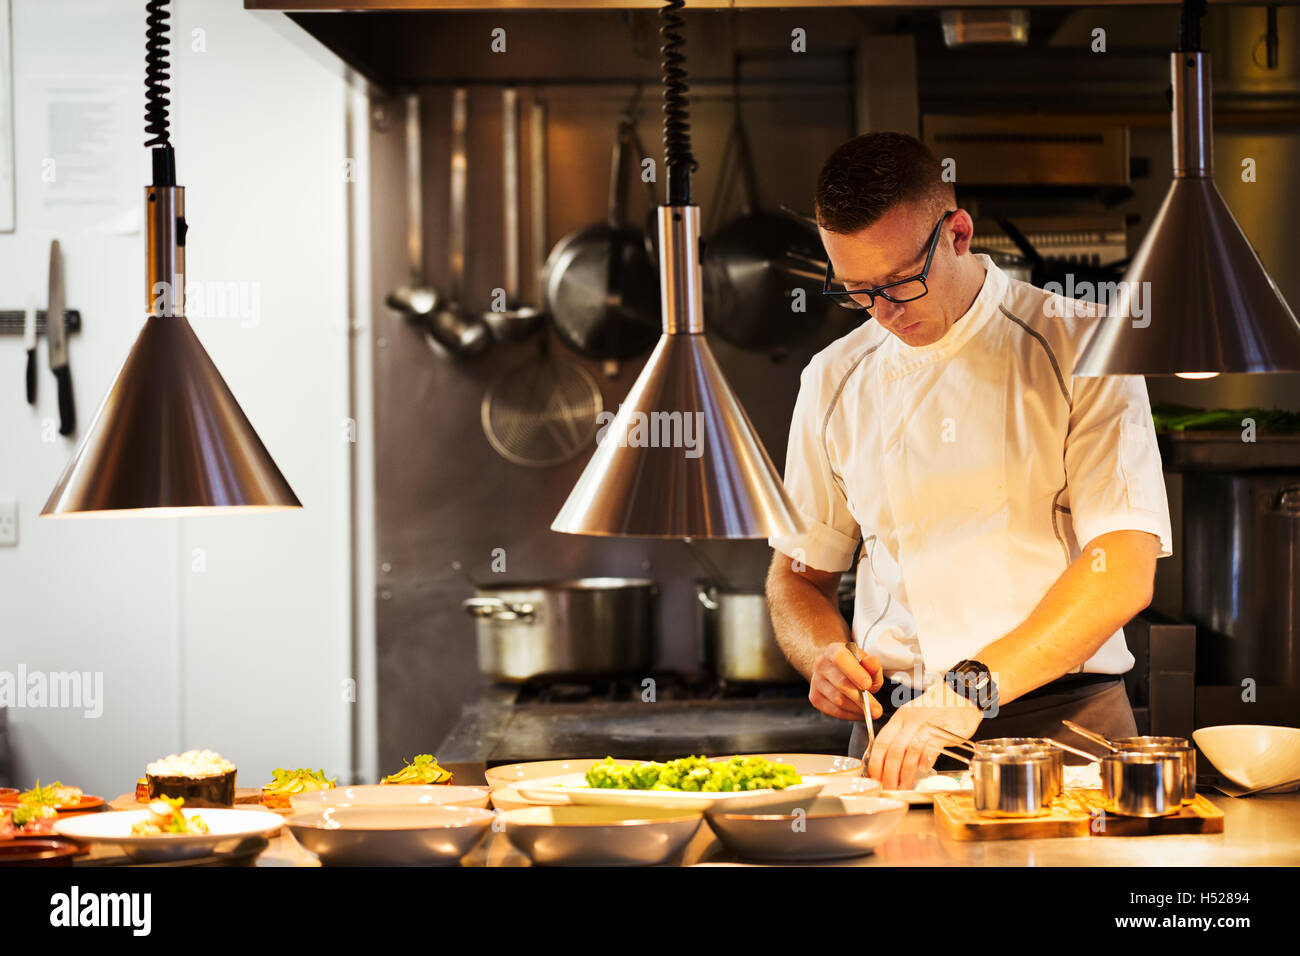 Restaurant Kitchen Chefs chef in a restaurant kitchen, plating food stock photo, royalty